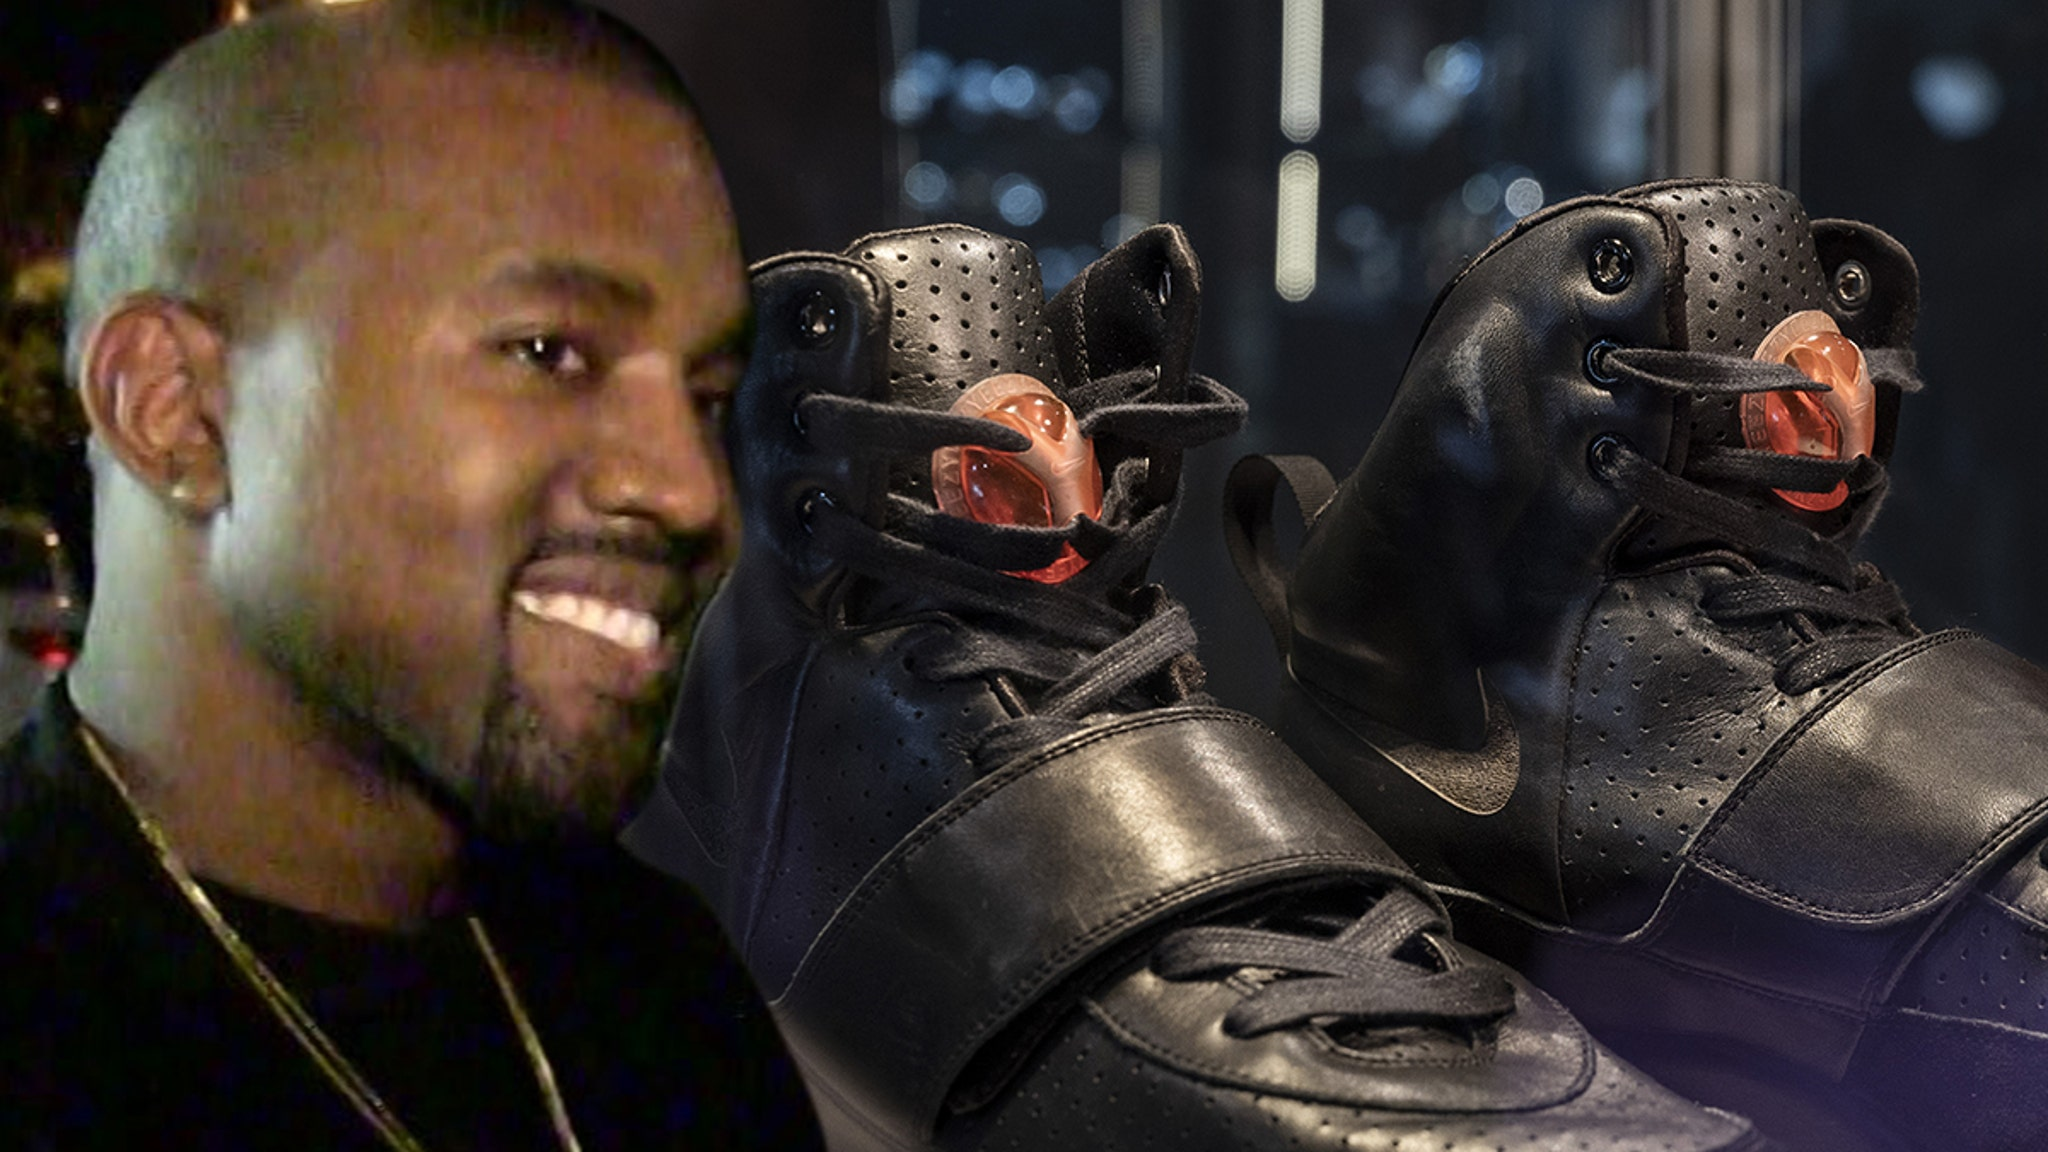 Kanye West 'Grammy Worn' Nike Air Yeezy 1s Sell for Record $1.8 Million